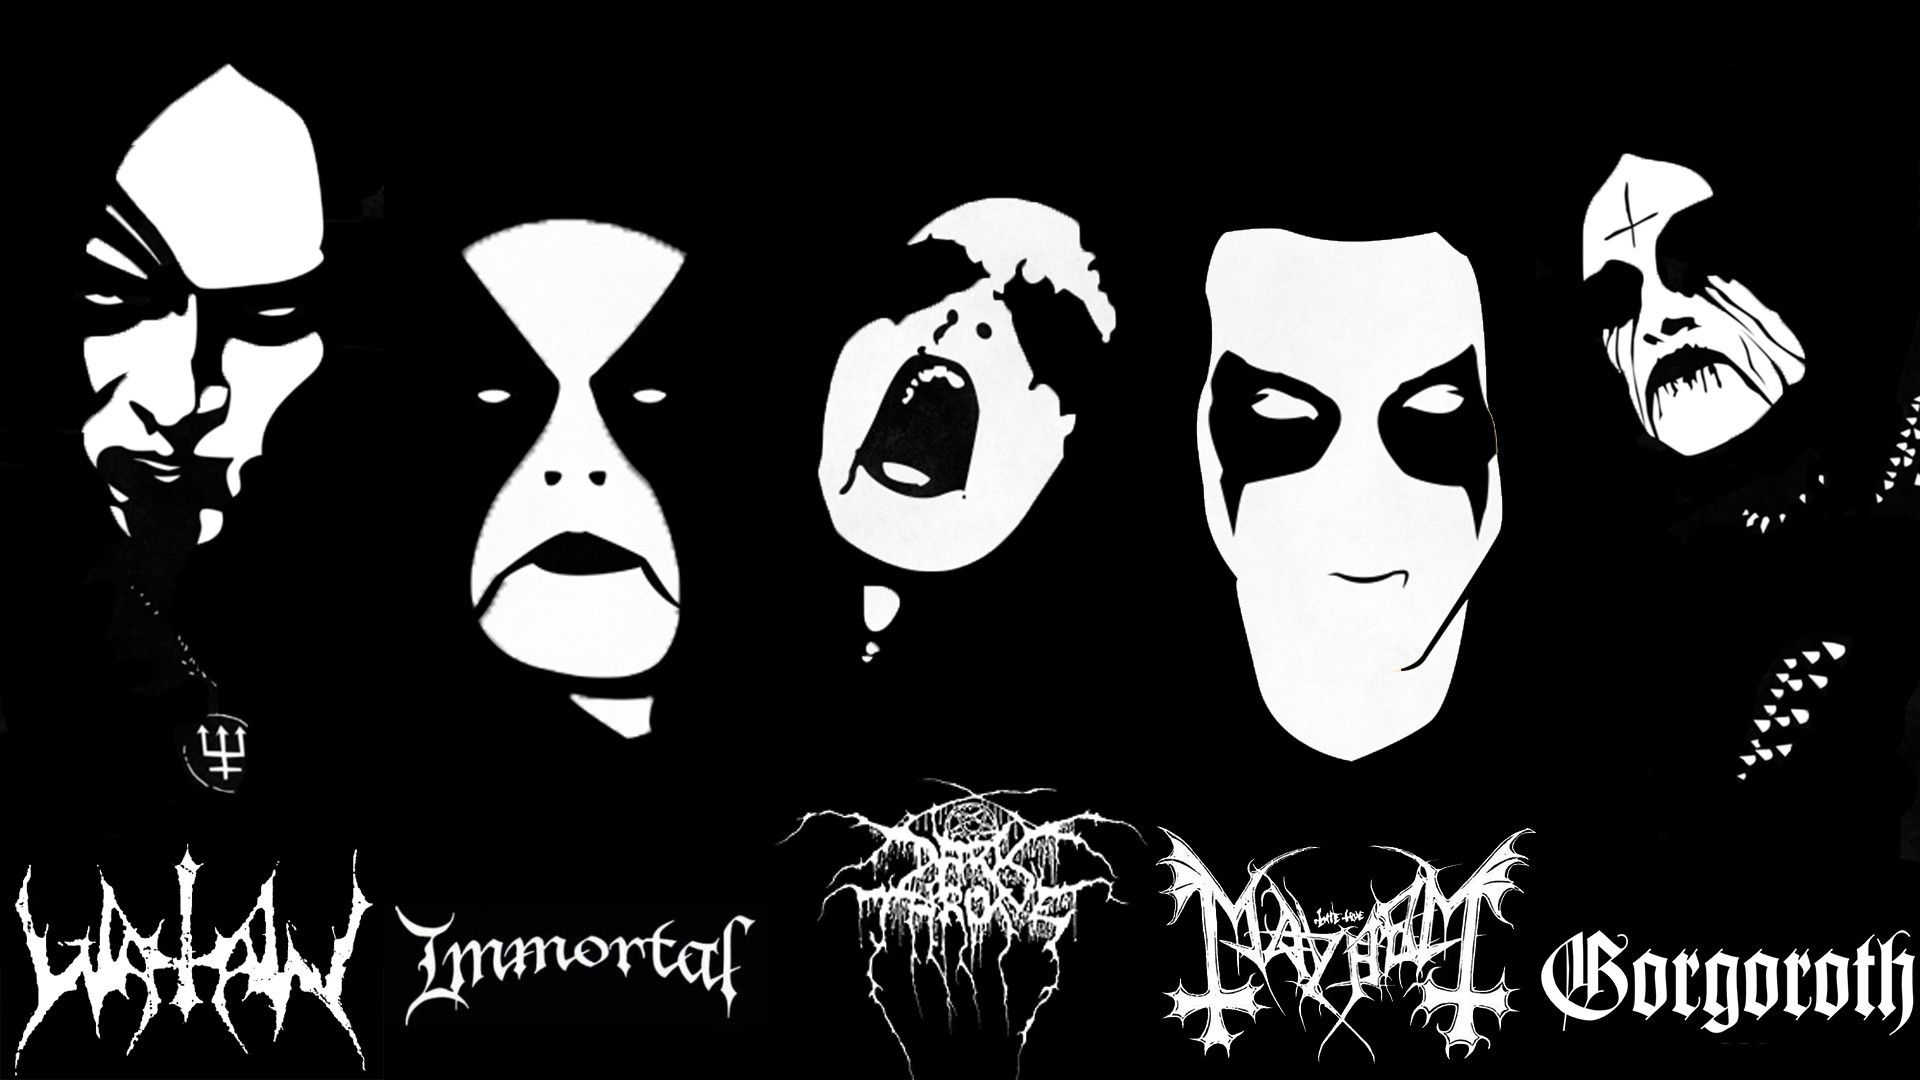 Gorgoroth Wallpapers Top Free Gorgoroth Backgrounds Wallpaperaccess